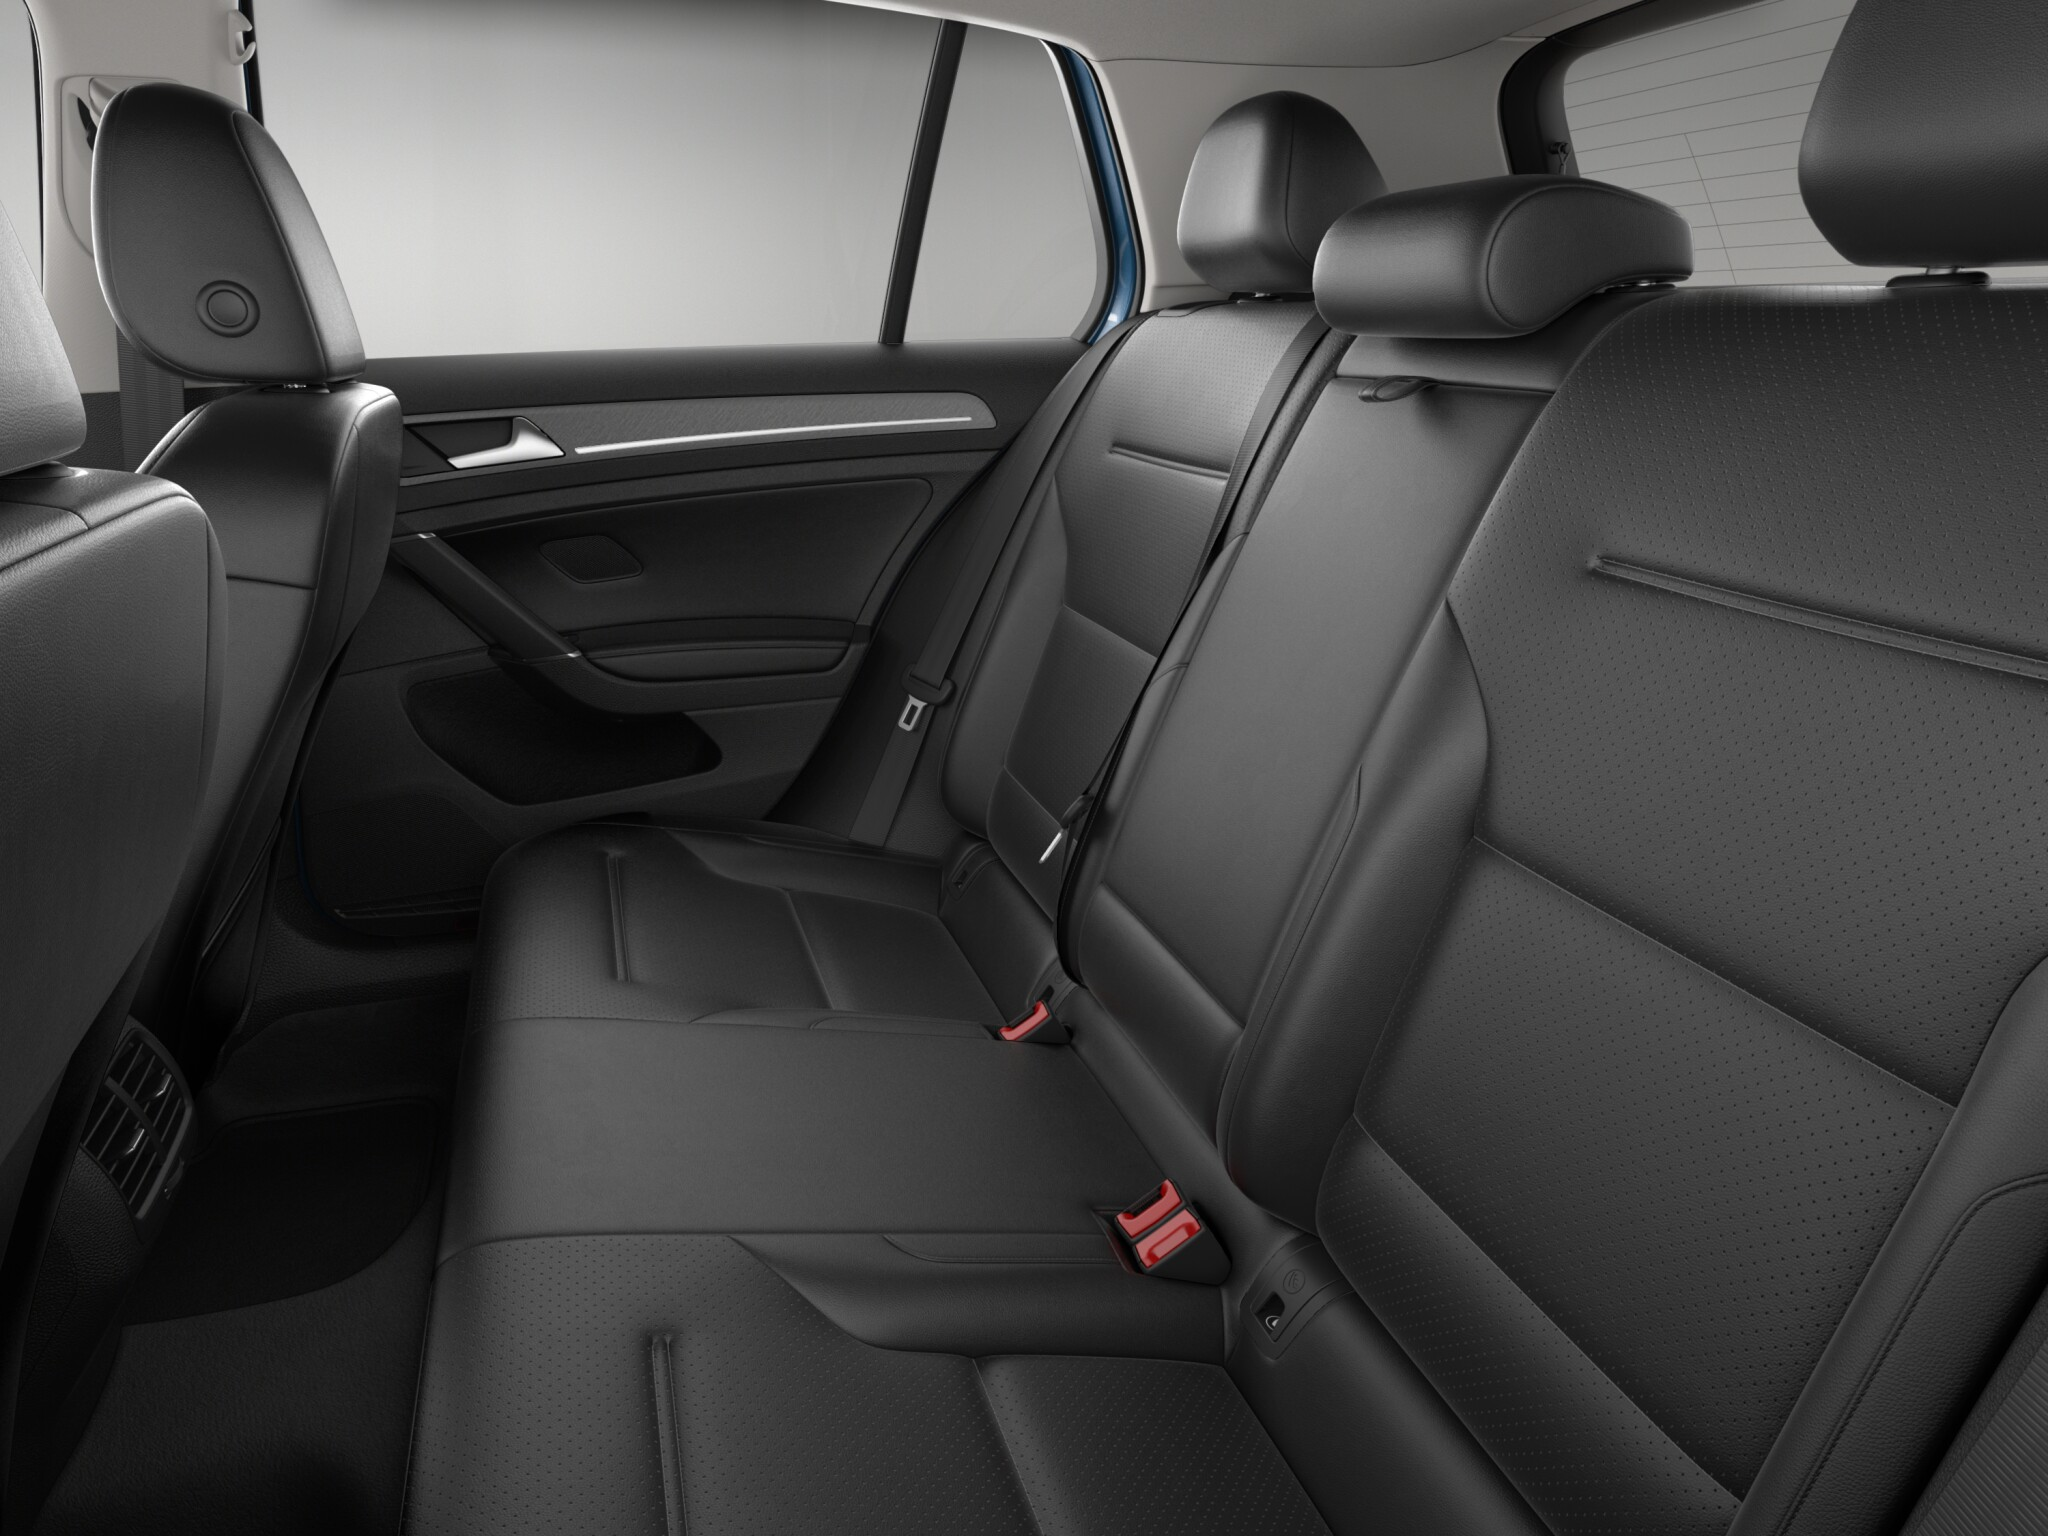 2016 Volkswagen E Golf Rear Seats Interior (View 6 of 11)